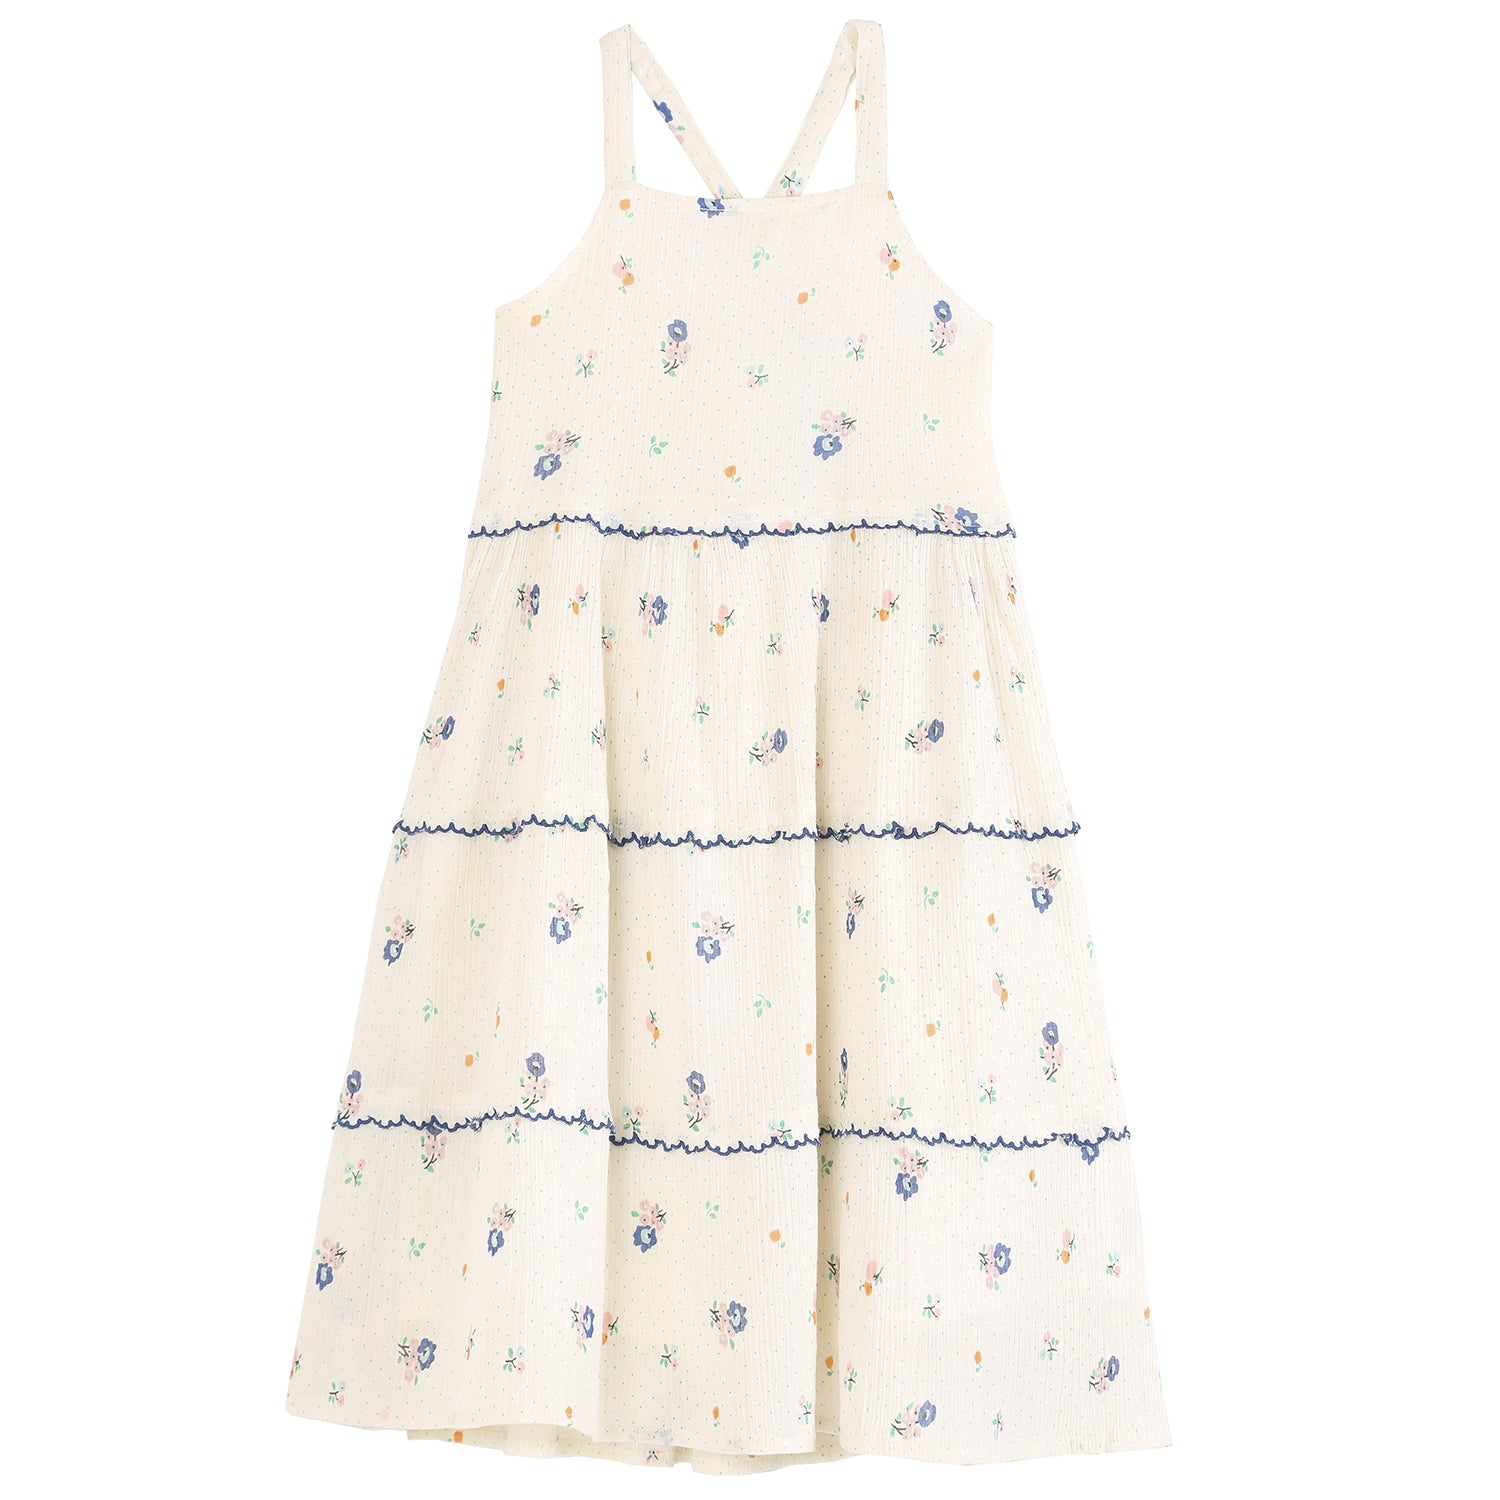 yoya, kids, girls, emile et ida, summer, embroidered, floral printed, tiered apron, dress